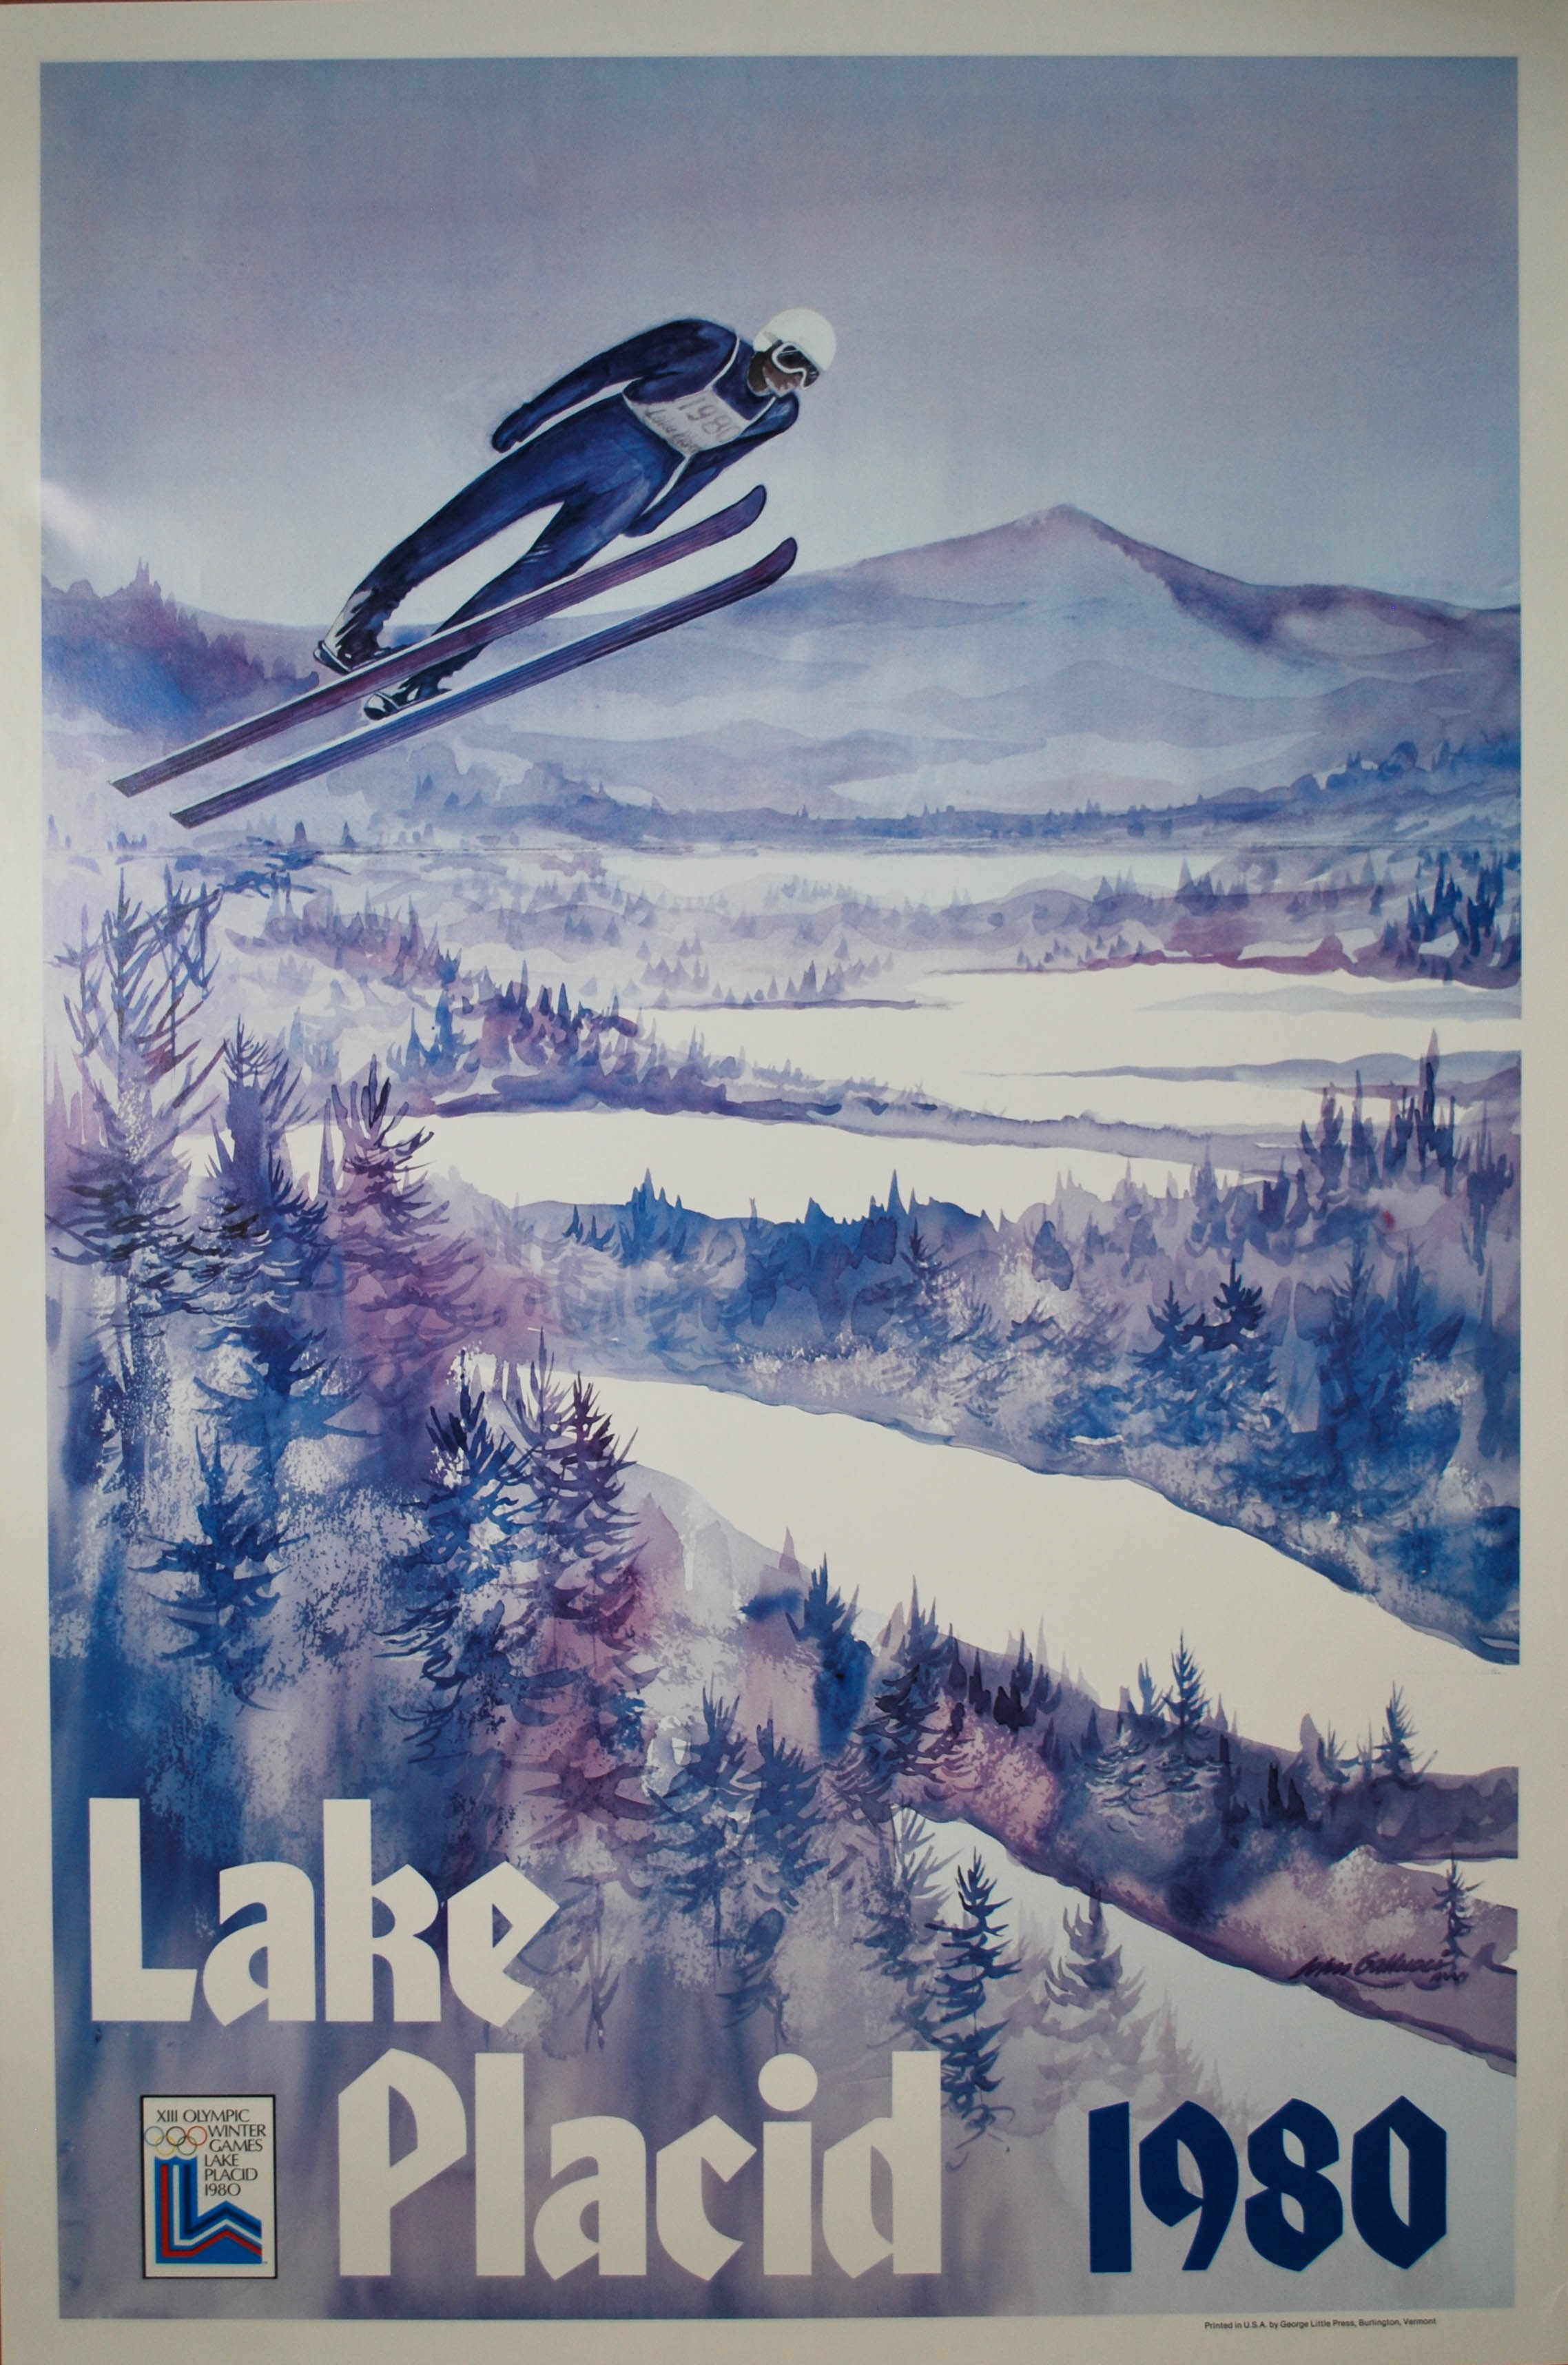 Olympic Winter Games, Lake Placid. Whitney. 1980. - Posters We Love